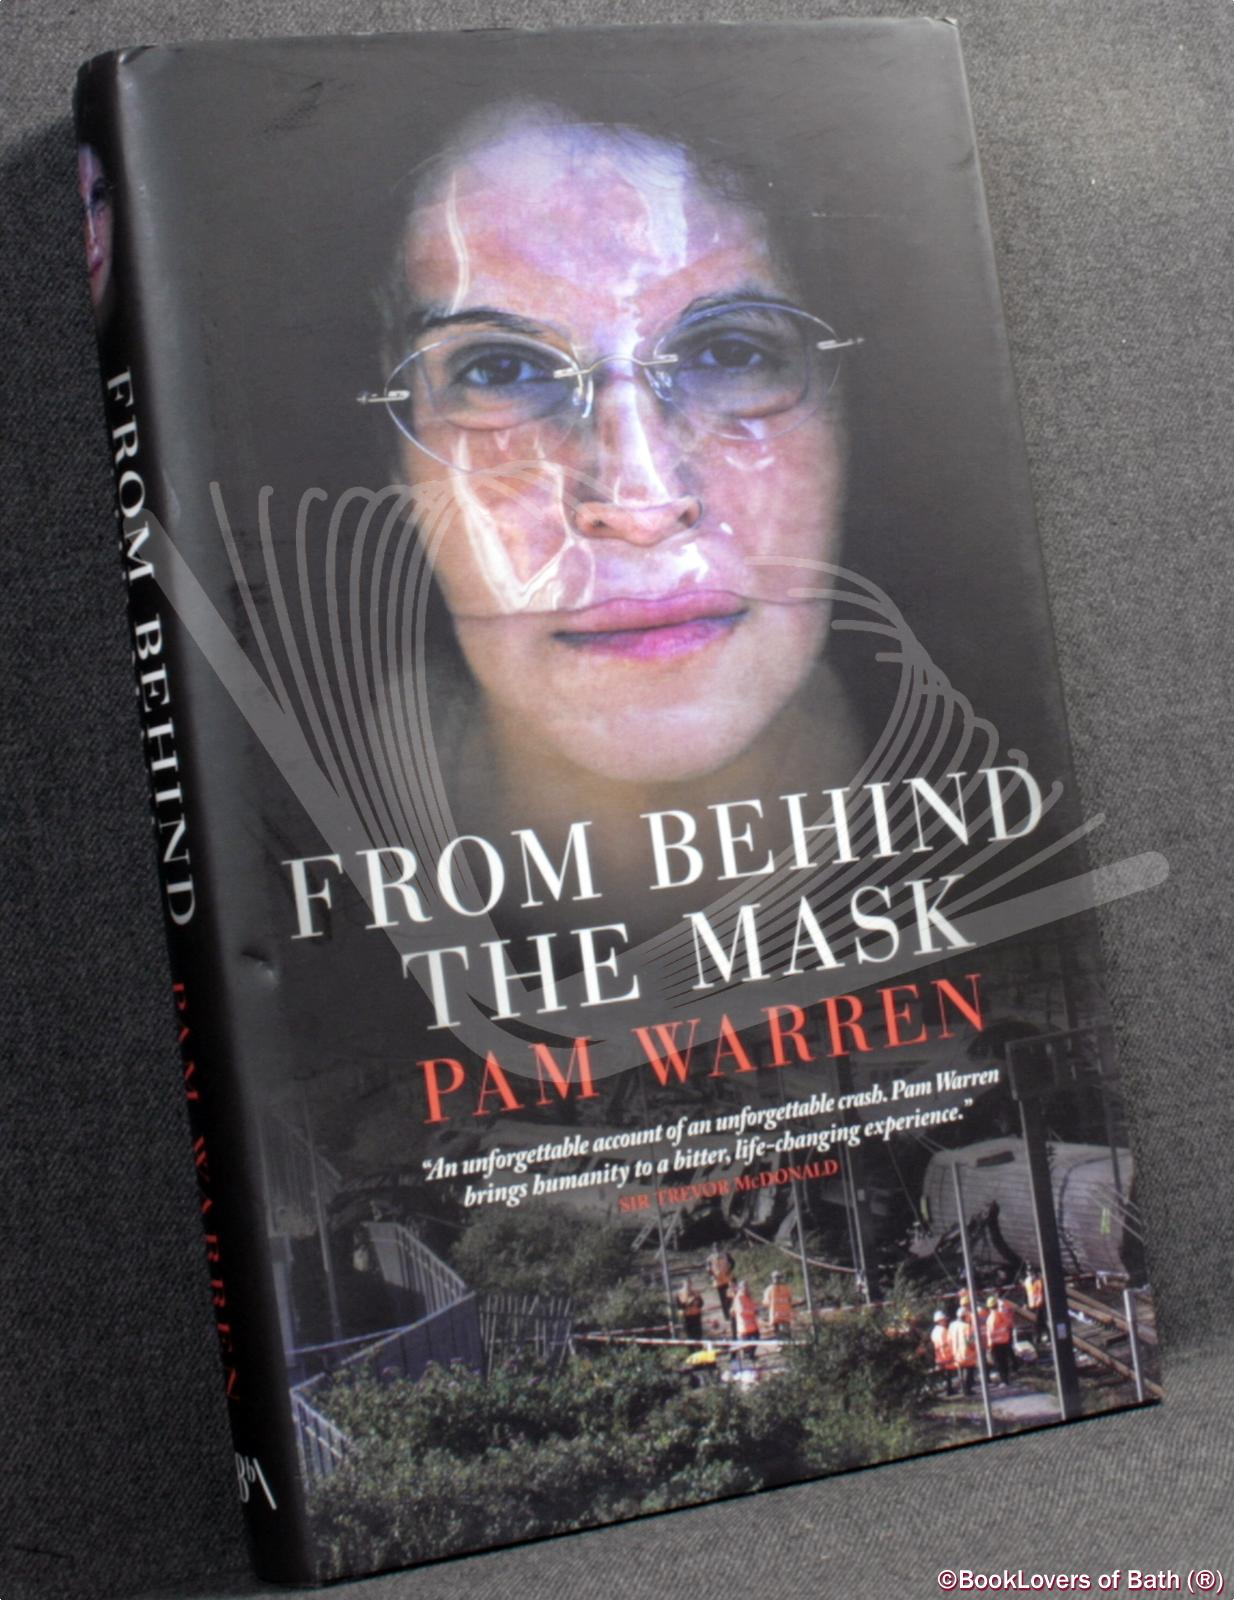 From Behind the Mask - Pam Warren with Gareth Owen